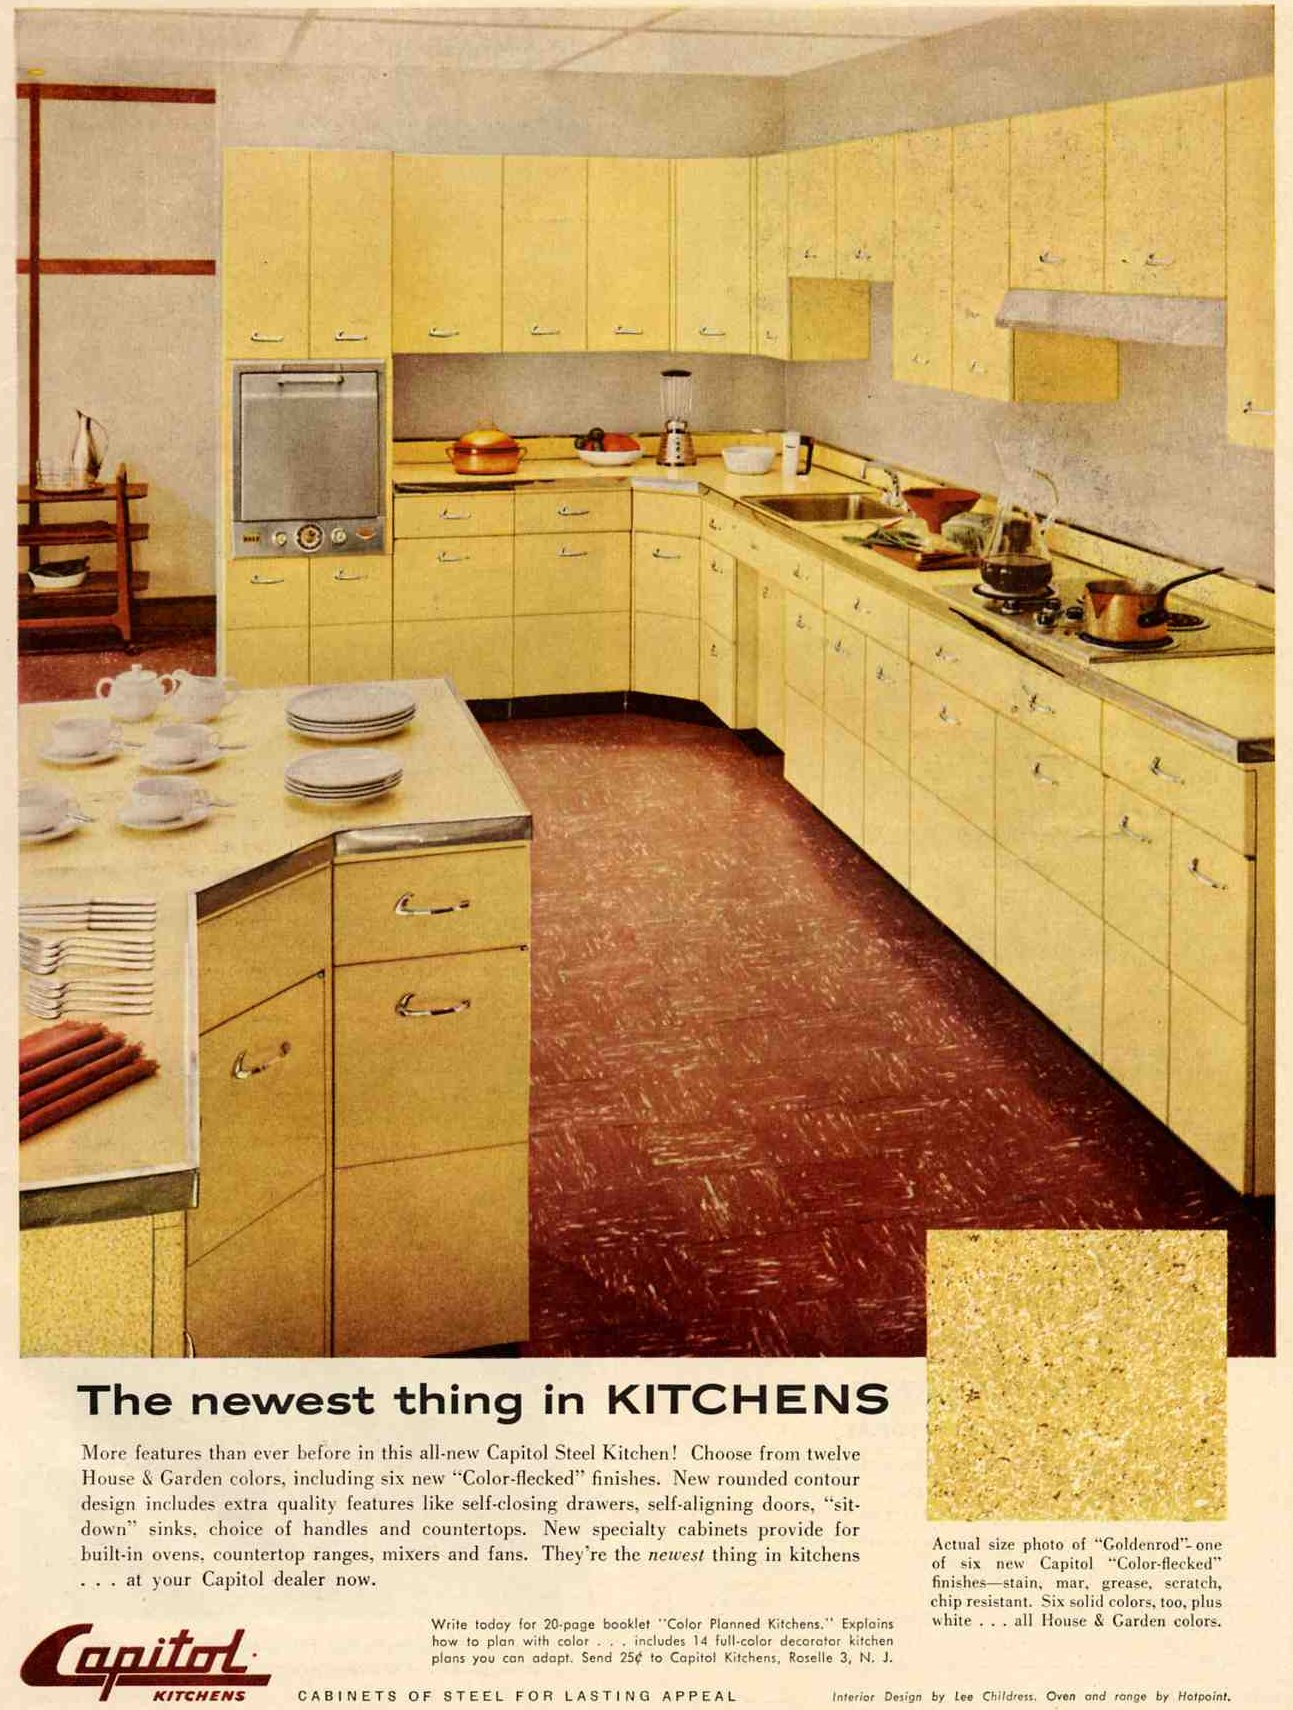 20 years of mid century kitchen history in 24 favorite images